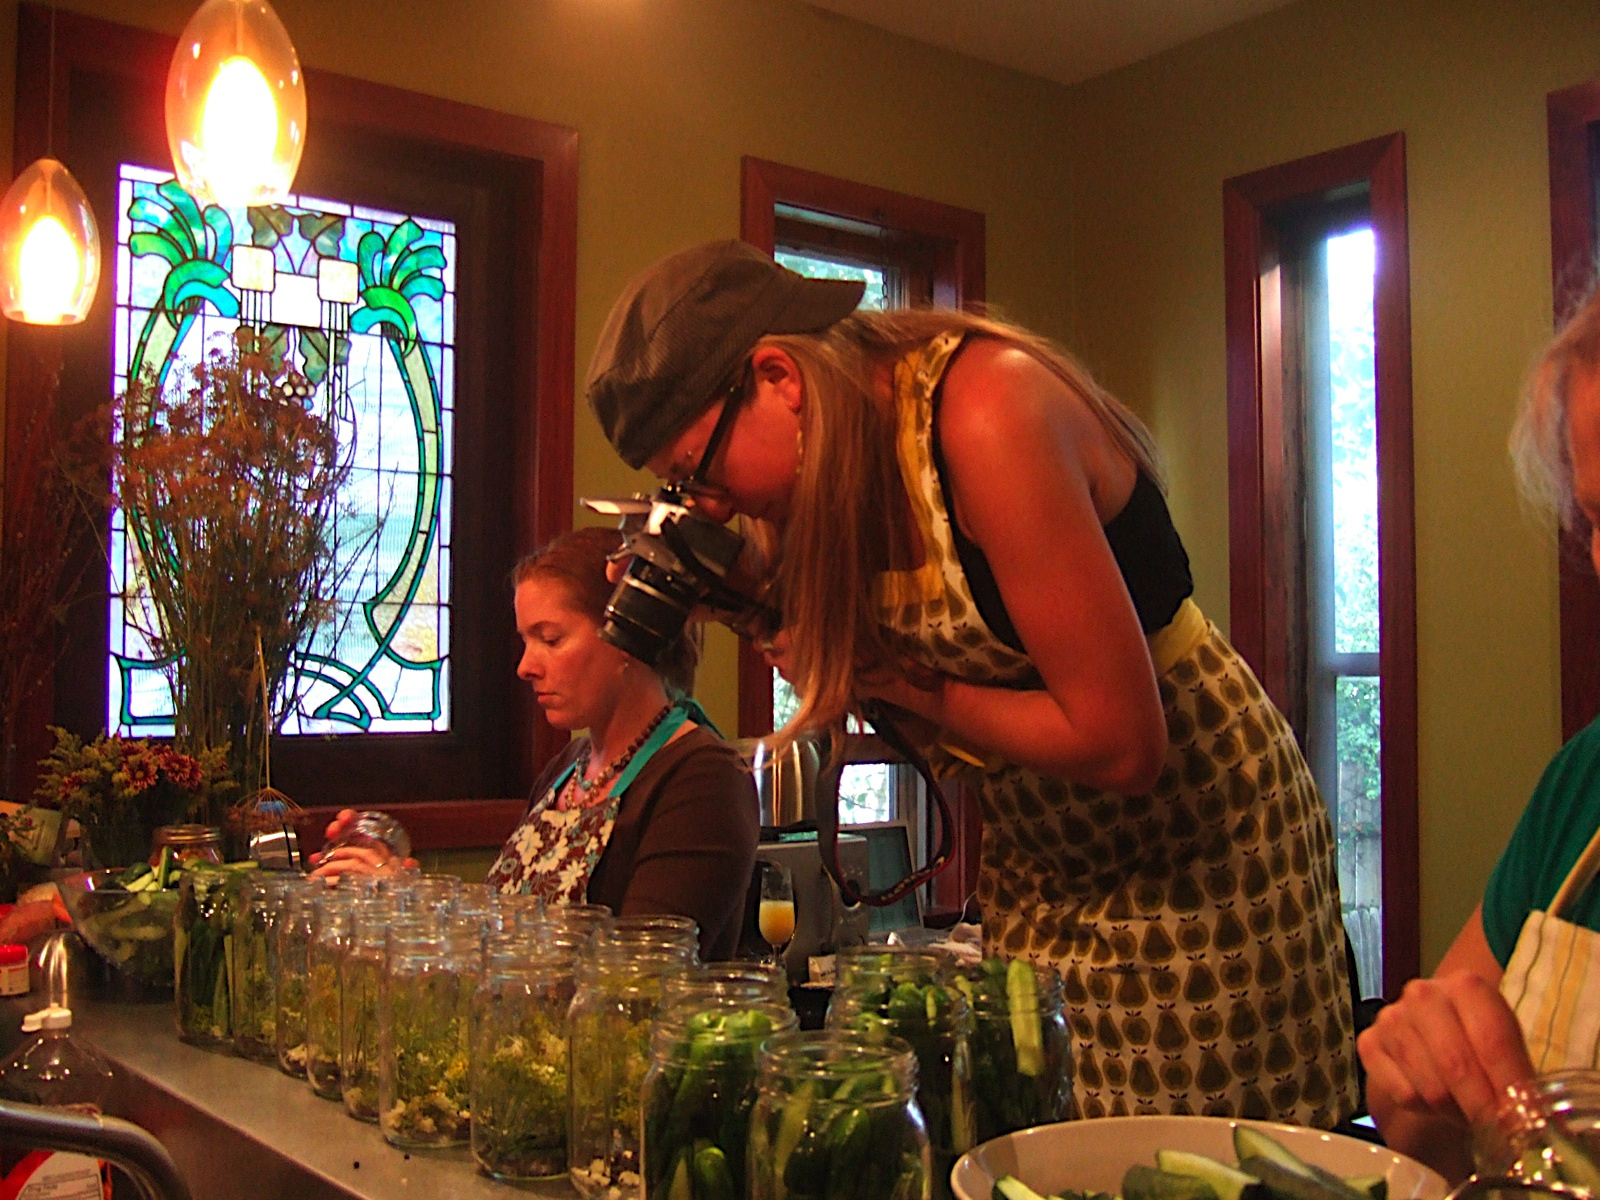 Party pics portray picklers' passion